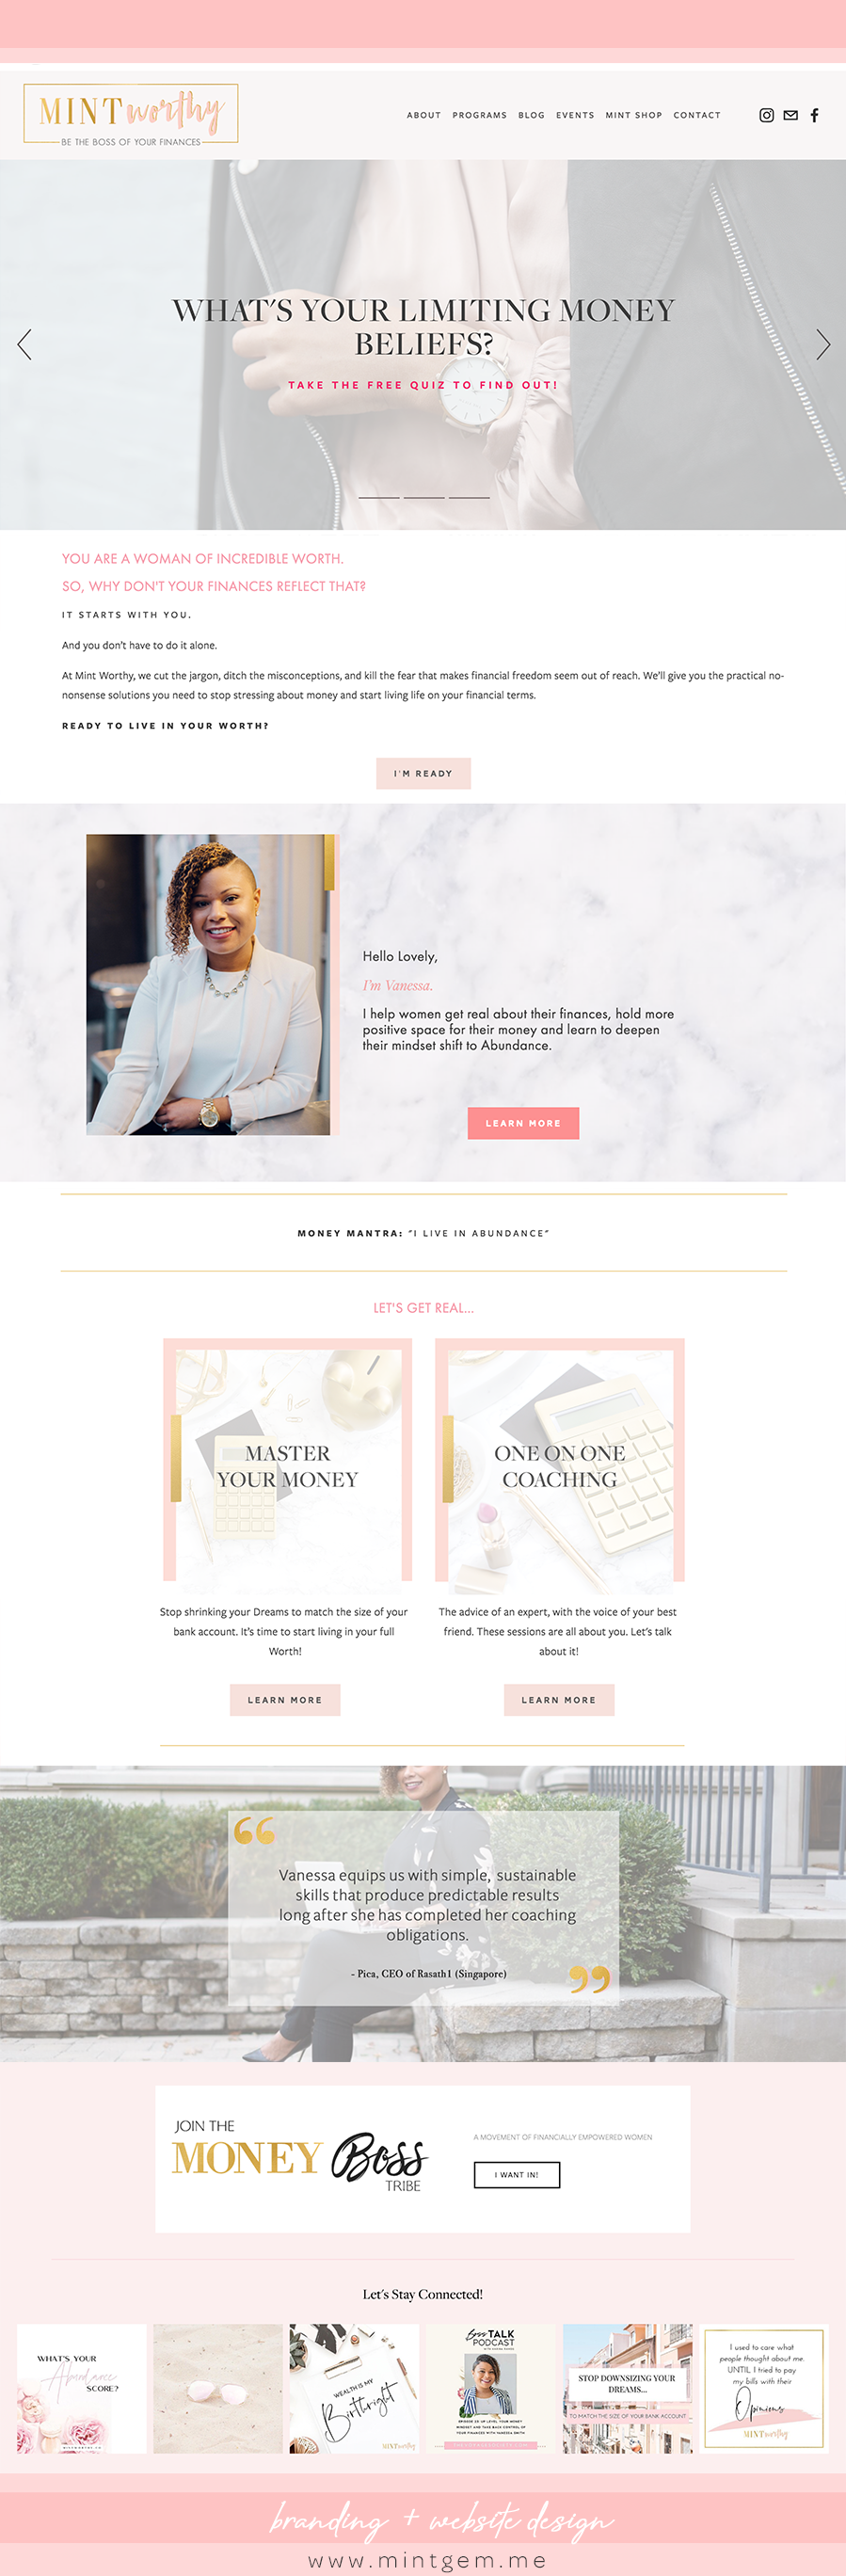 33-branding-mintgem-logo-design-for-SOULFUL-coaches-women-in-business.png